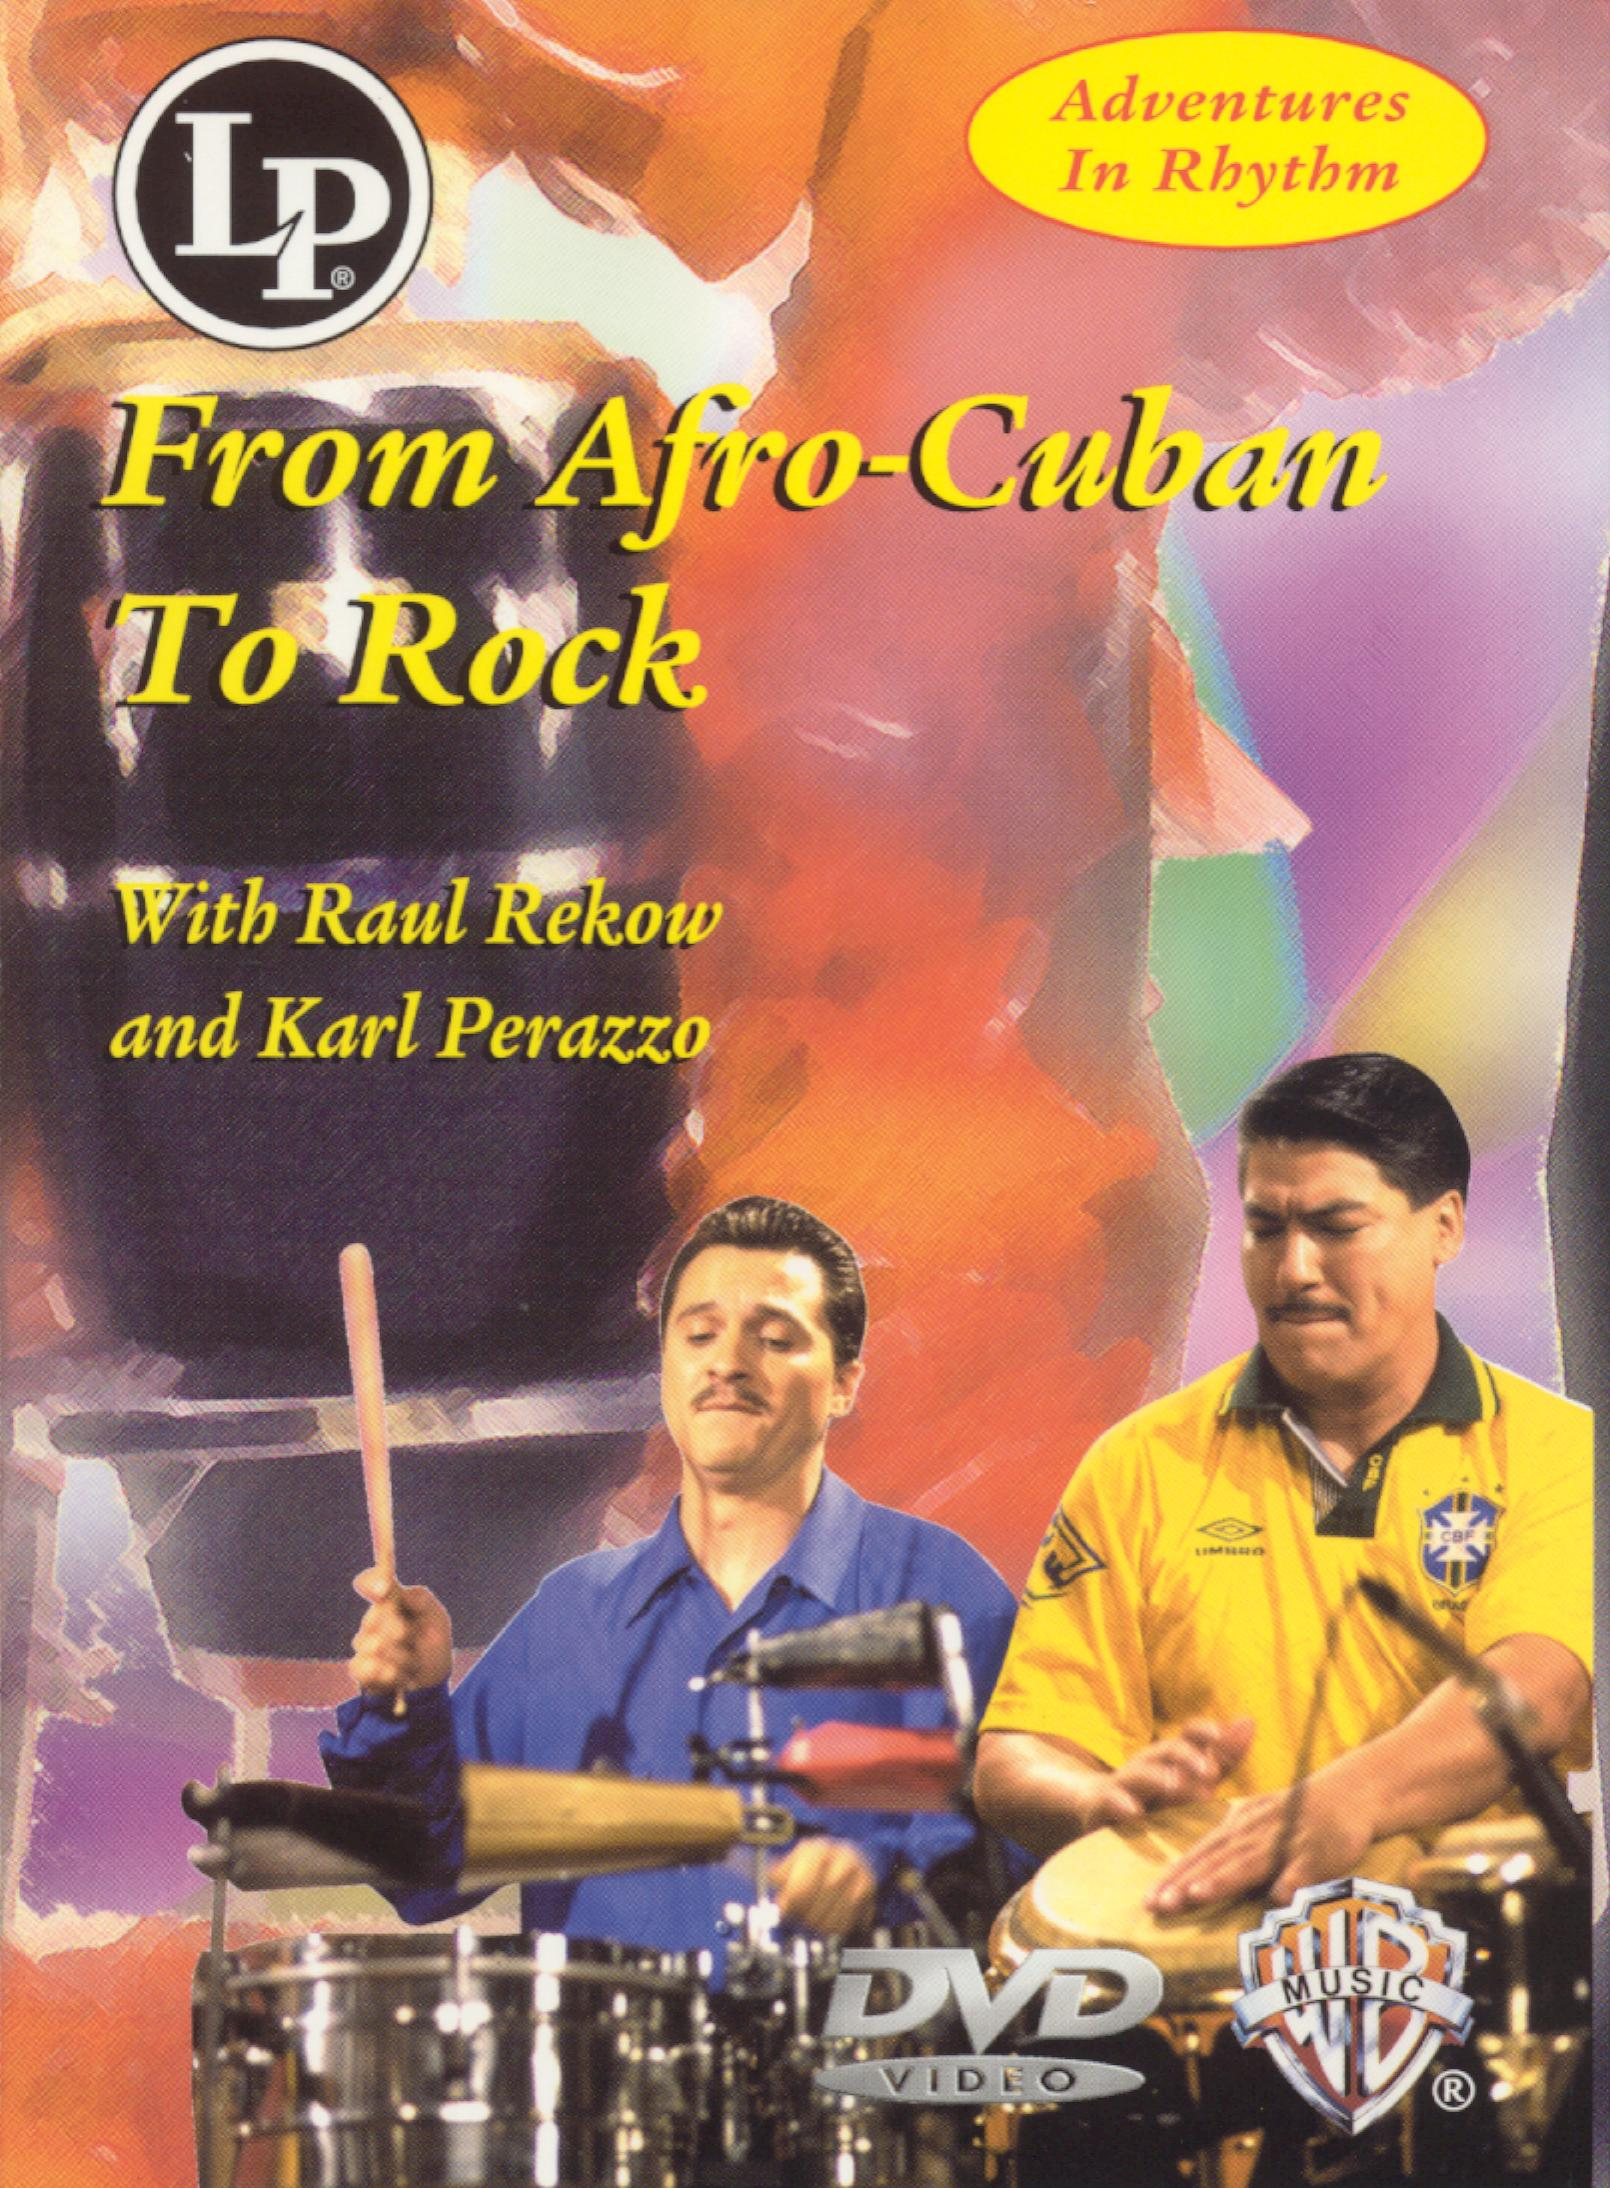 Adventures in Rhythm, Vol. 3: From Afro-Cuban to Rock